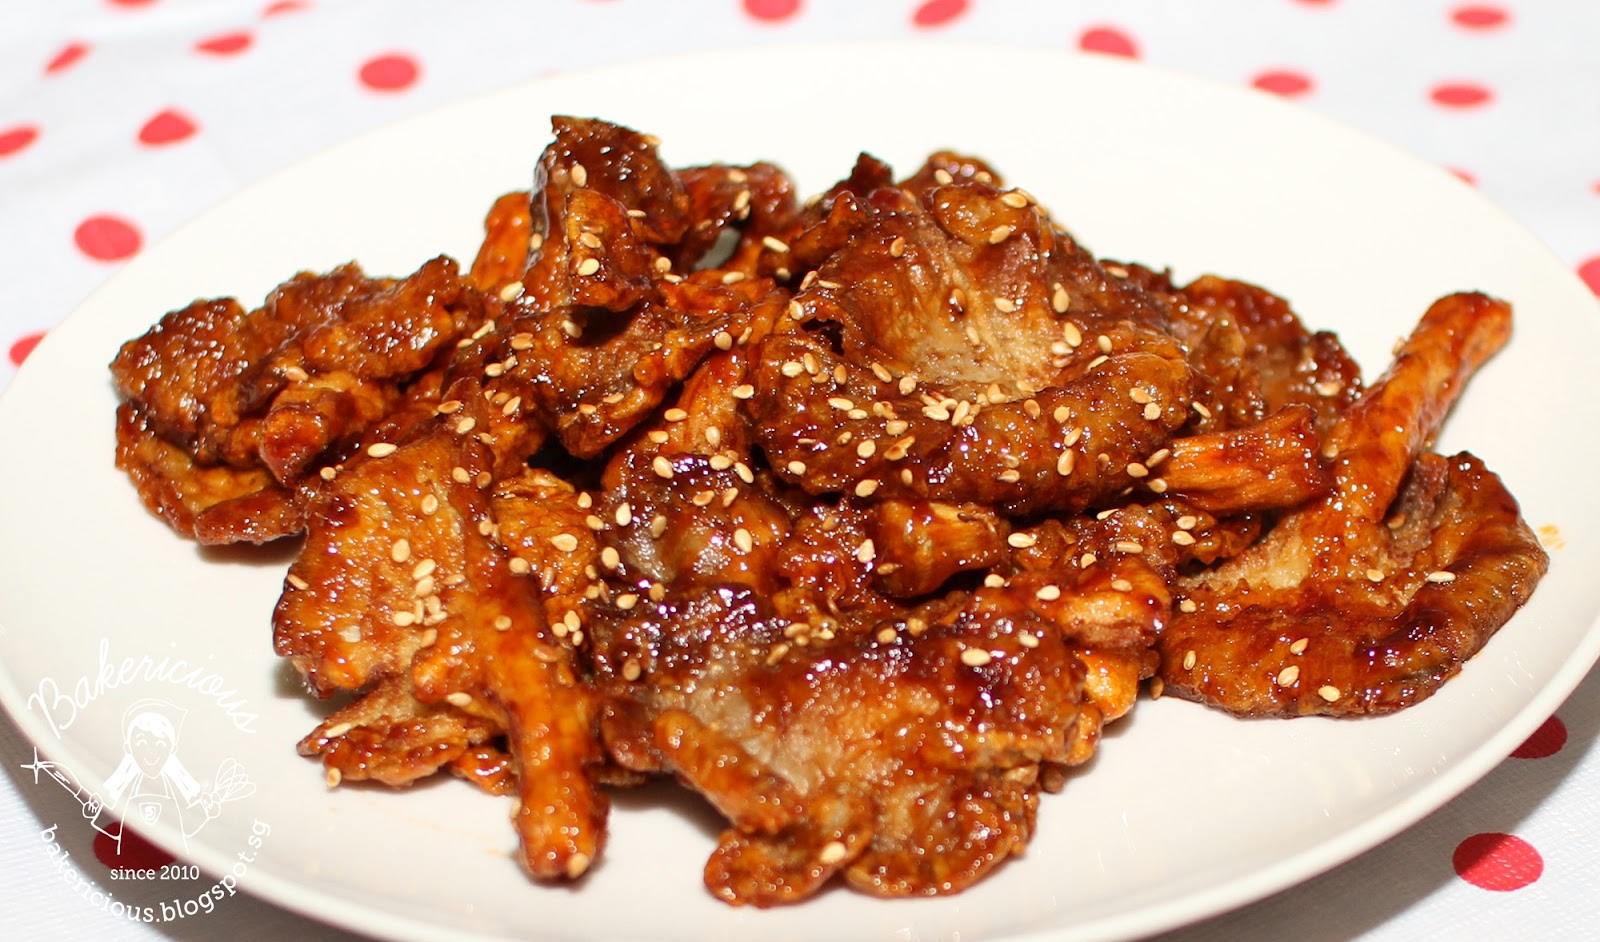 Bakericious: Fried Oyster Mushroom with Sweet Sauce